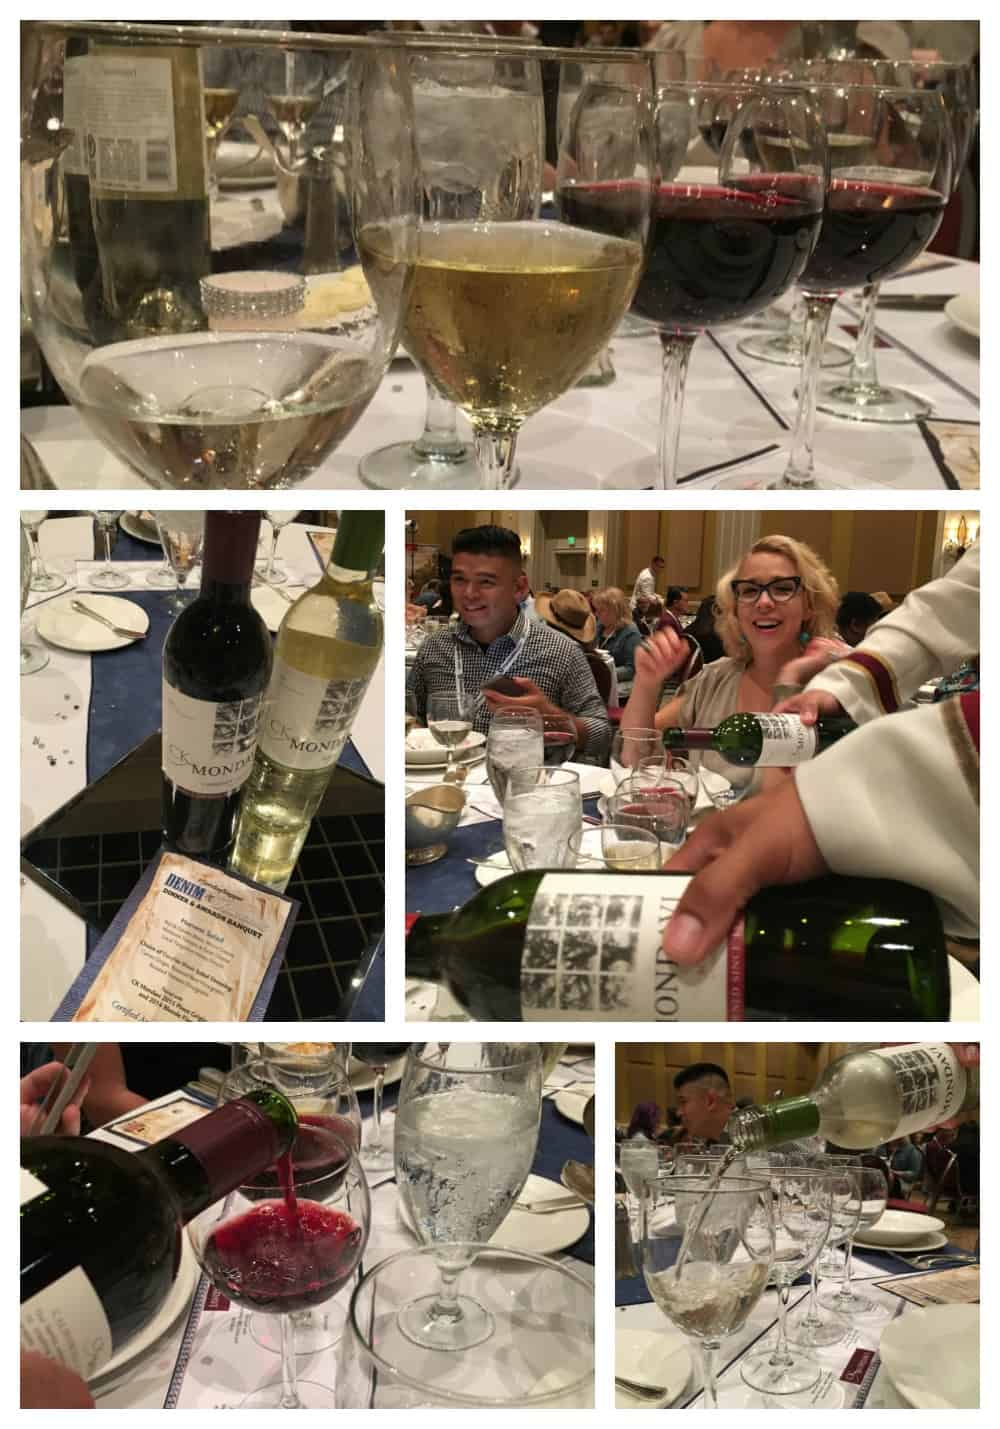 How to Succeed at #FWCon Without Really Trying| Recap - Drink #FWCon